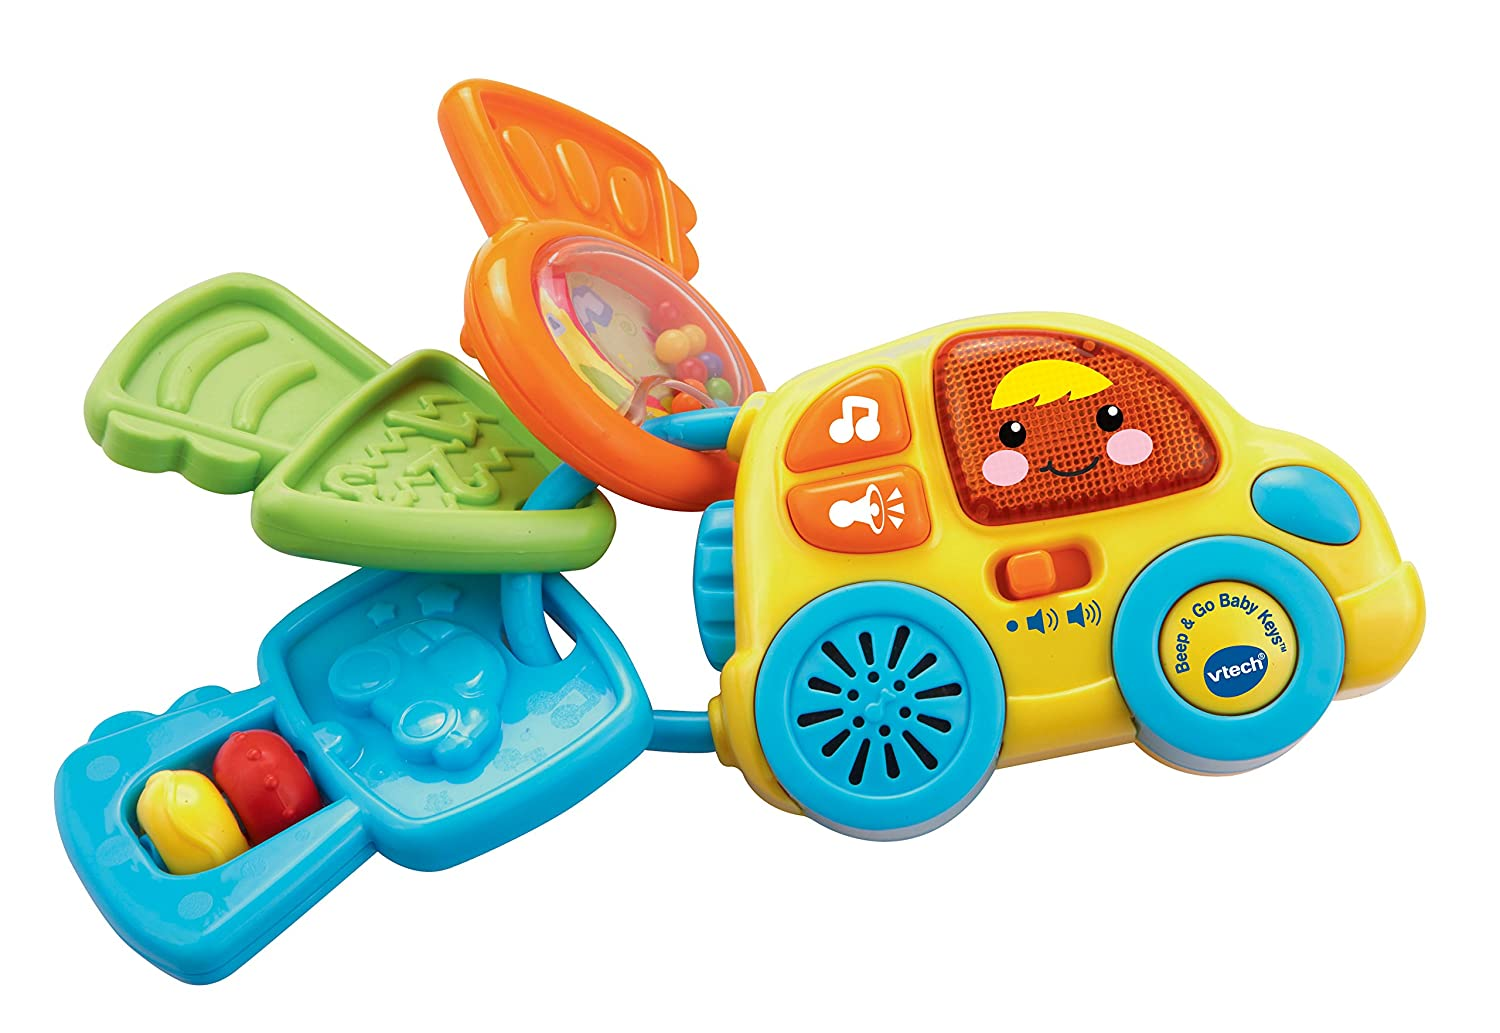 VTech Beep and Go Baby Key V Tech 80-150600